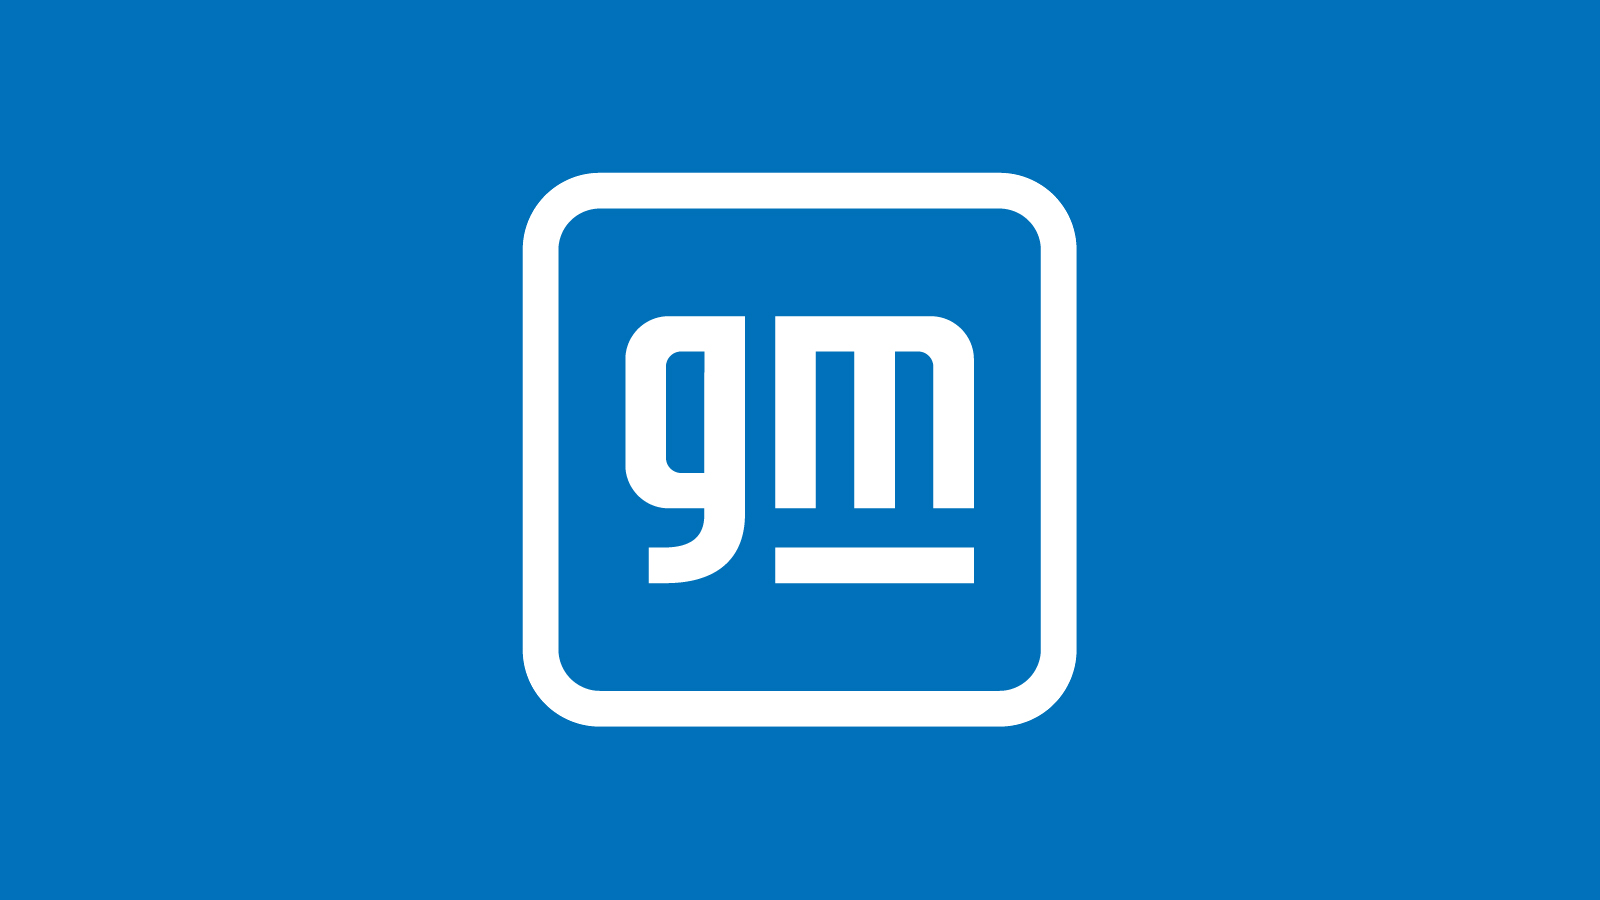 General Motors Announces Voluntary Delisting From Toronto Stock Exchange